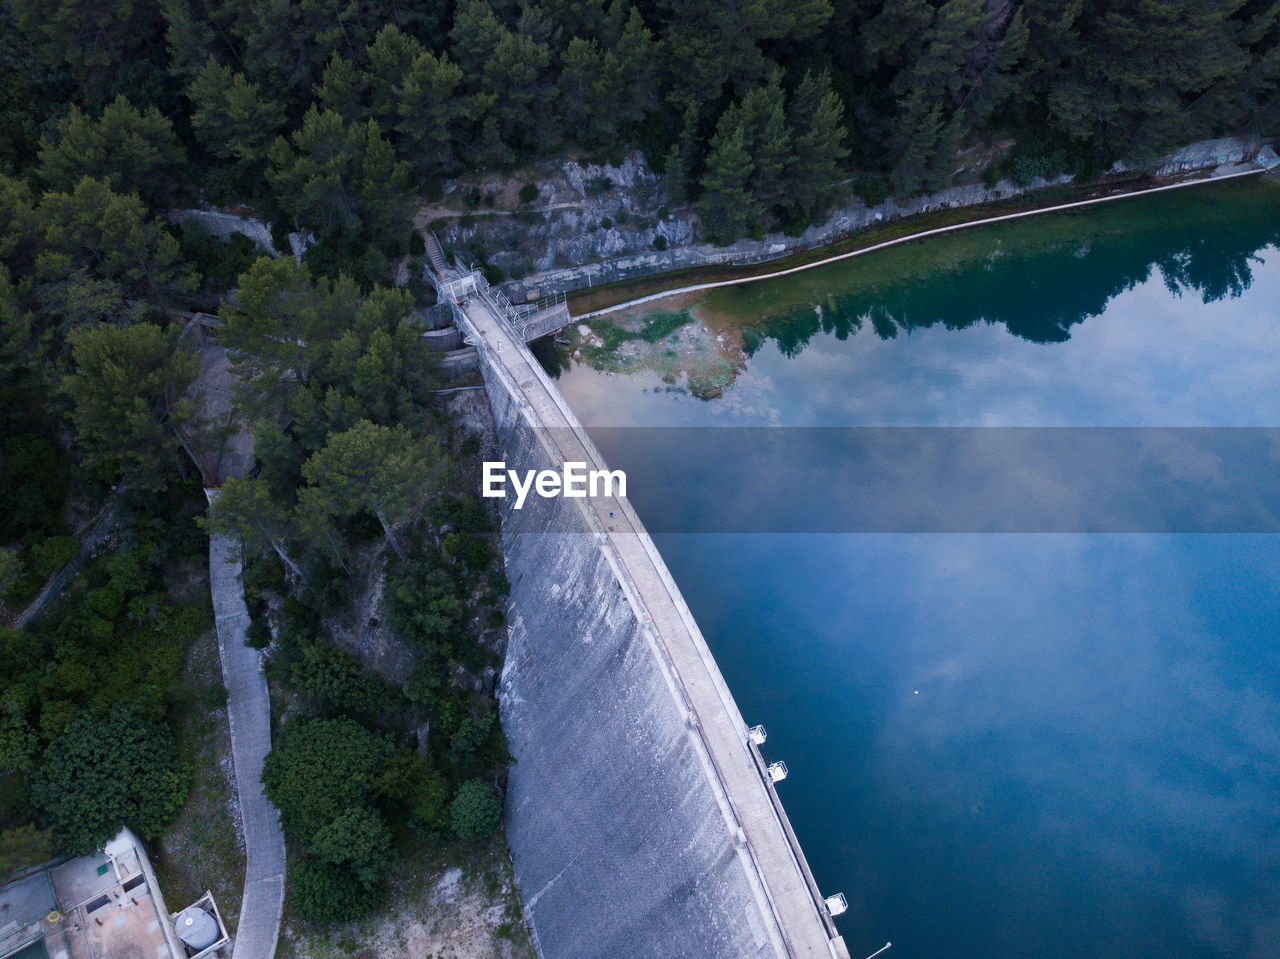 tree, water, scenics - nature, architecture, nature, high angle view, beauty in nature, built structure, plant, day, no people, dam, mountain, hydroelectric power, bridge, travel destinations, transportation, connection, tranquil scene, bridge - man made structure, outdoors, power in nature